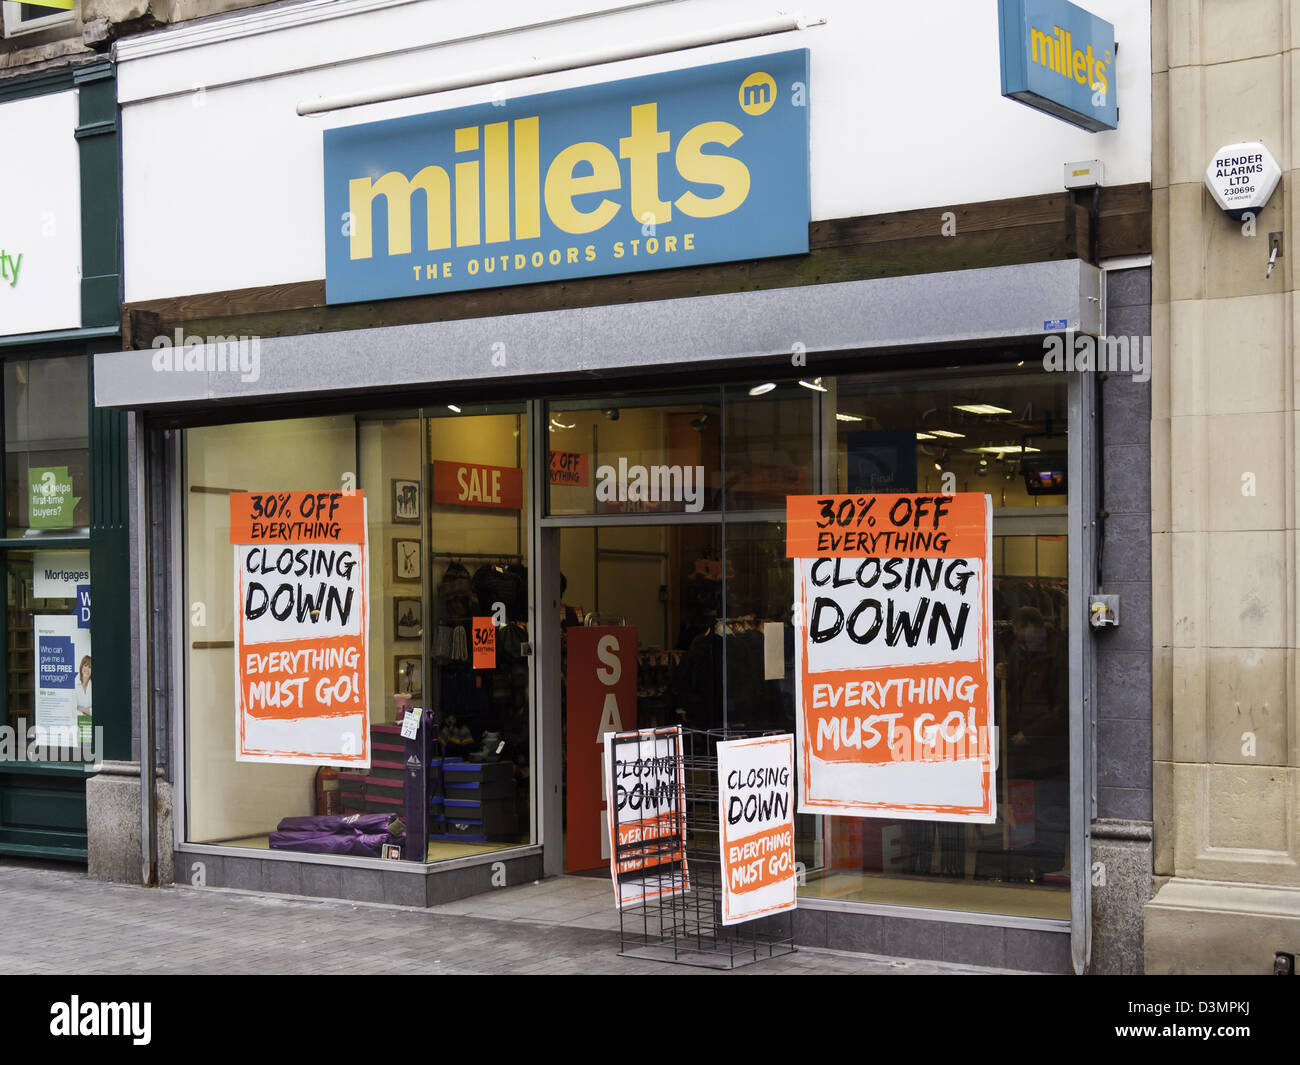 5db155508e Millets Outdoor Clothing store in Middlesbrough closing down sale after  reported financial problems of its parent company